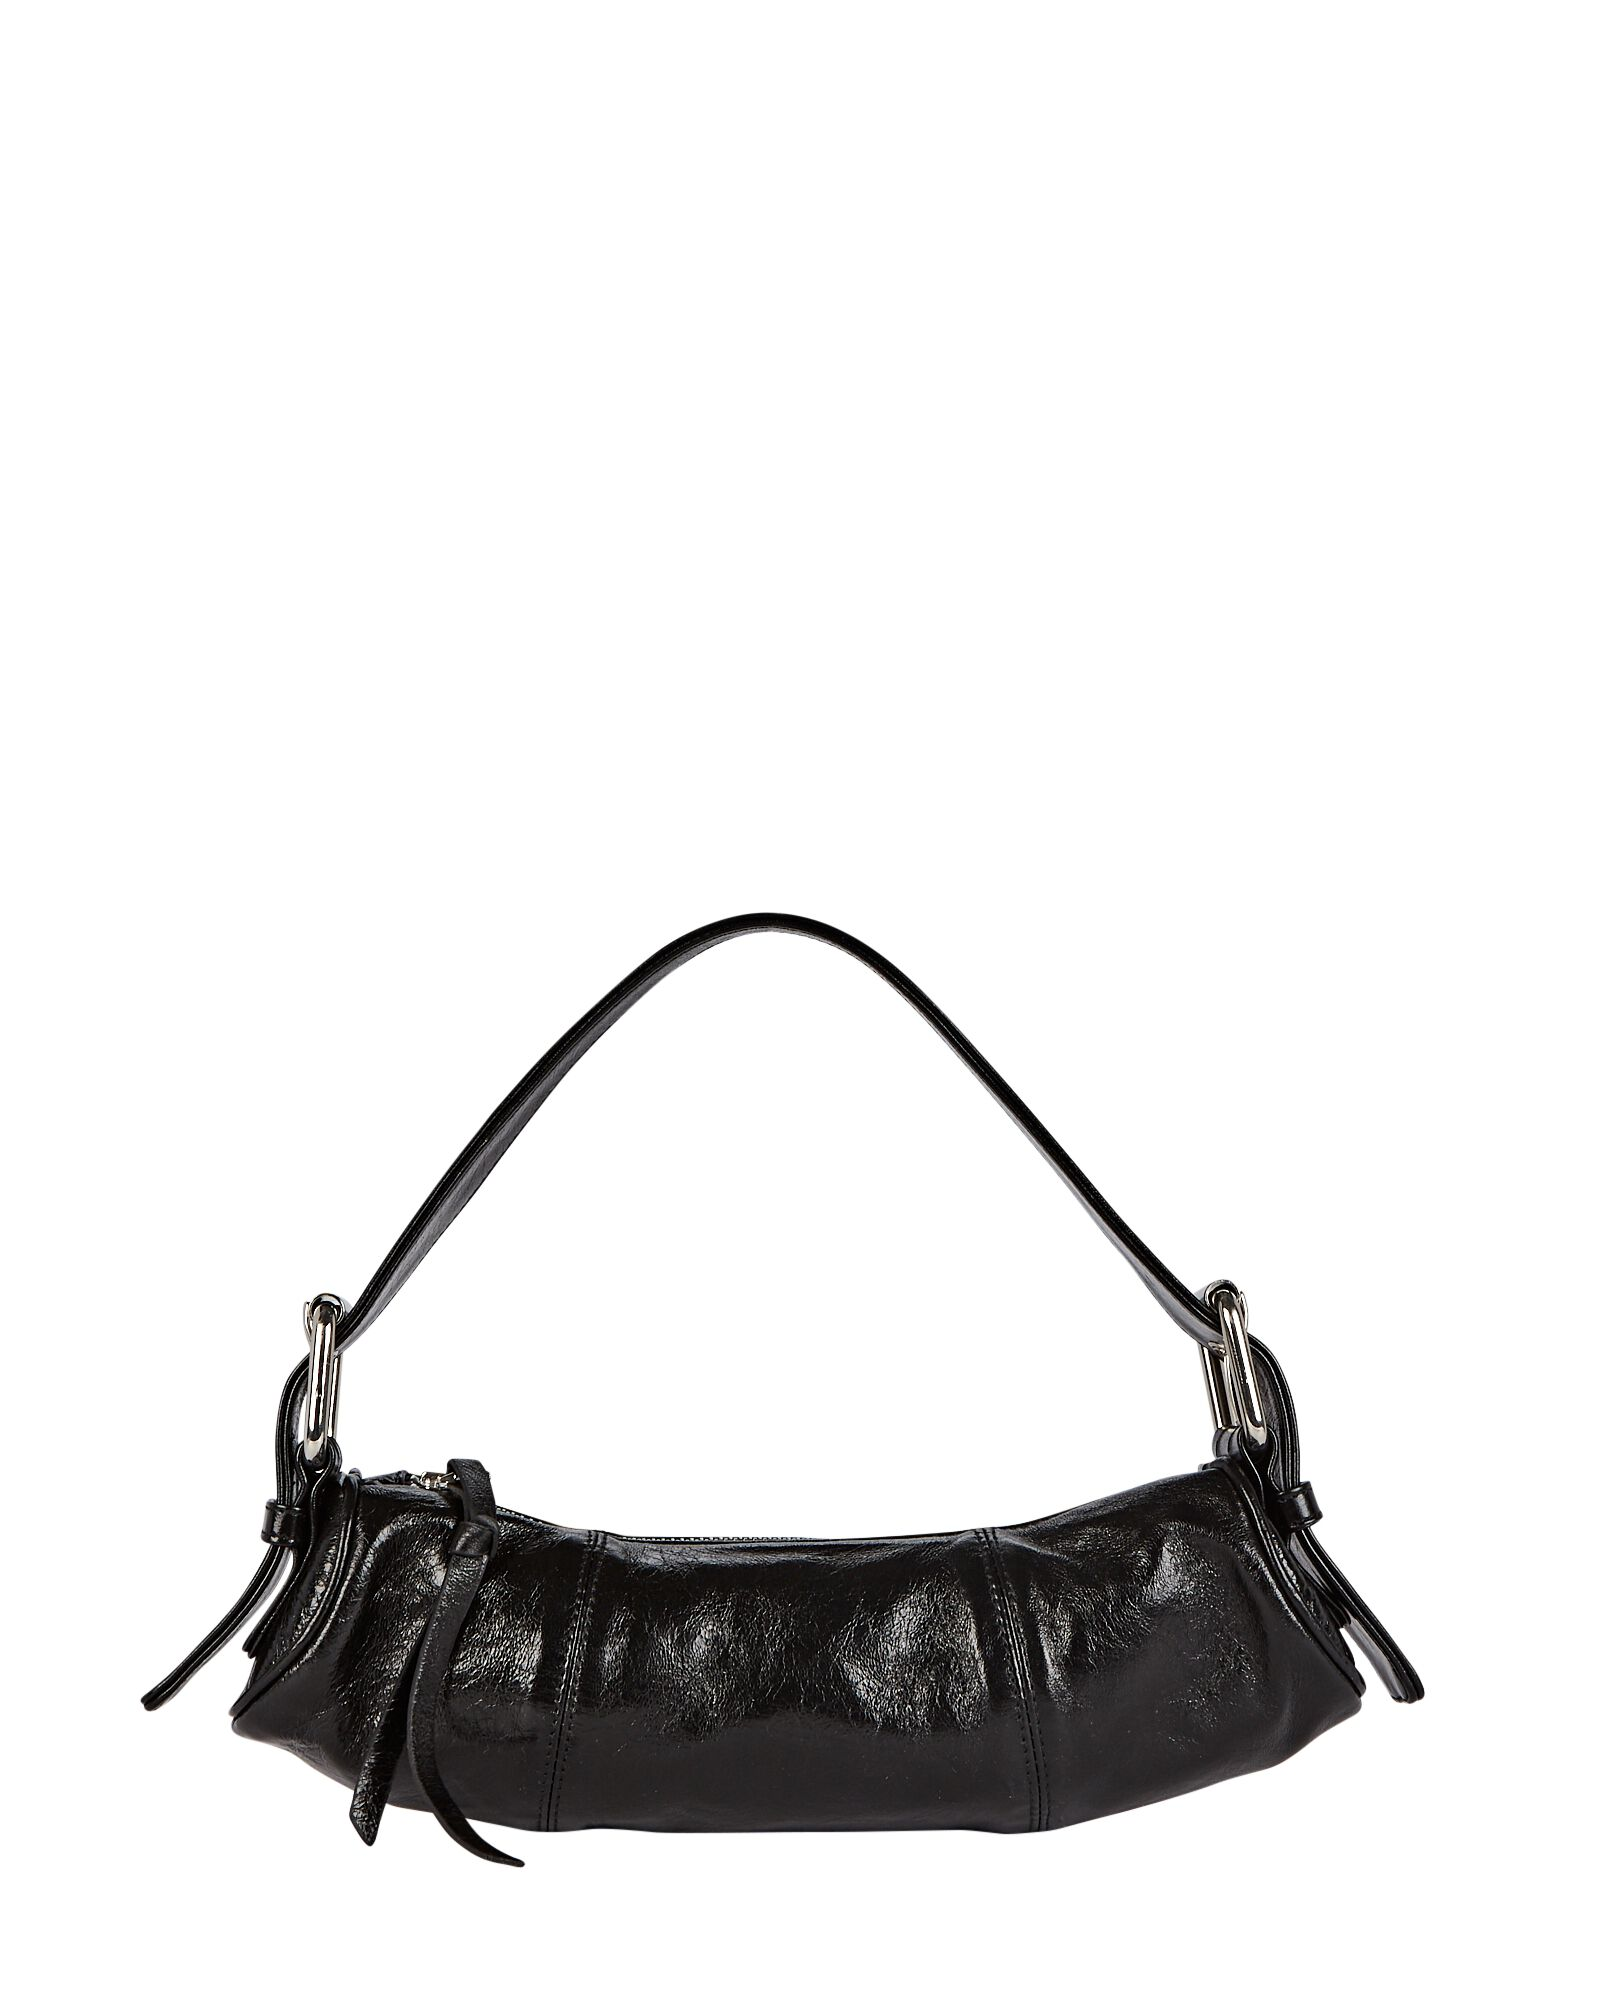 Kubi Cylinder Leather Baguette Bag by By Far, available on intermixonline.com for $480 Kylie Jenner Bags Exact Product